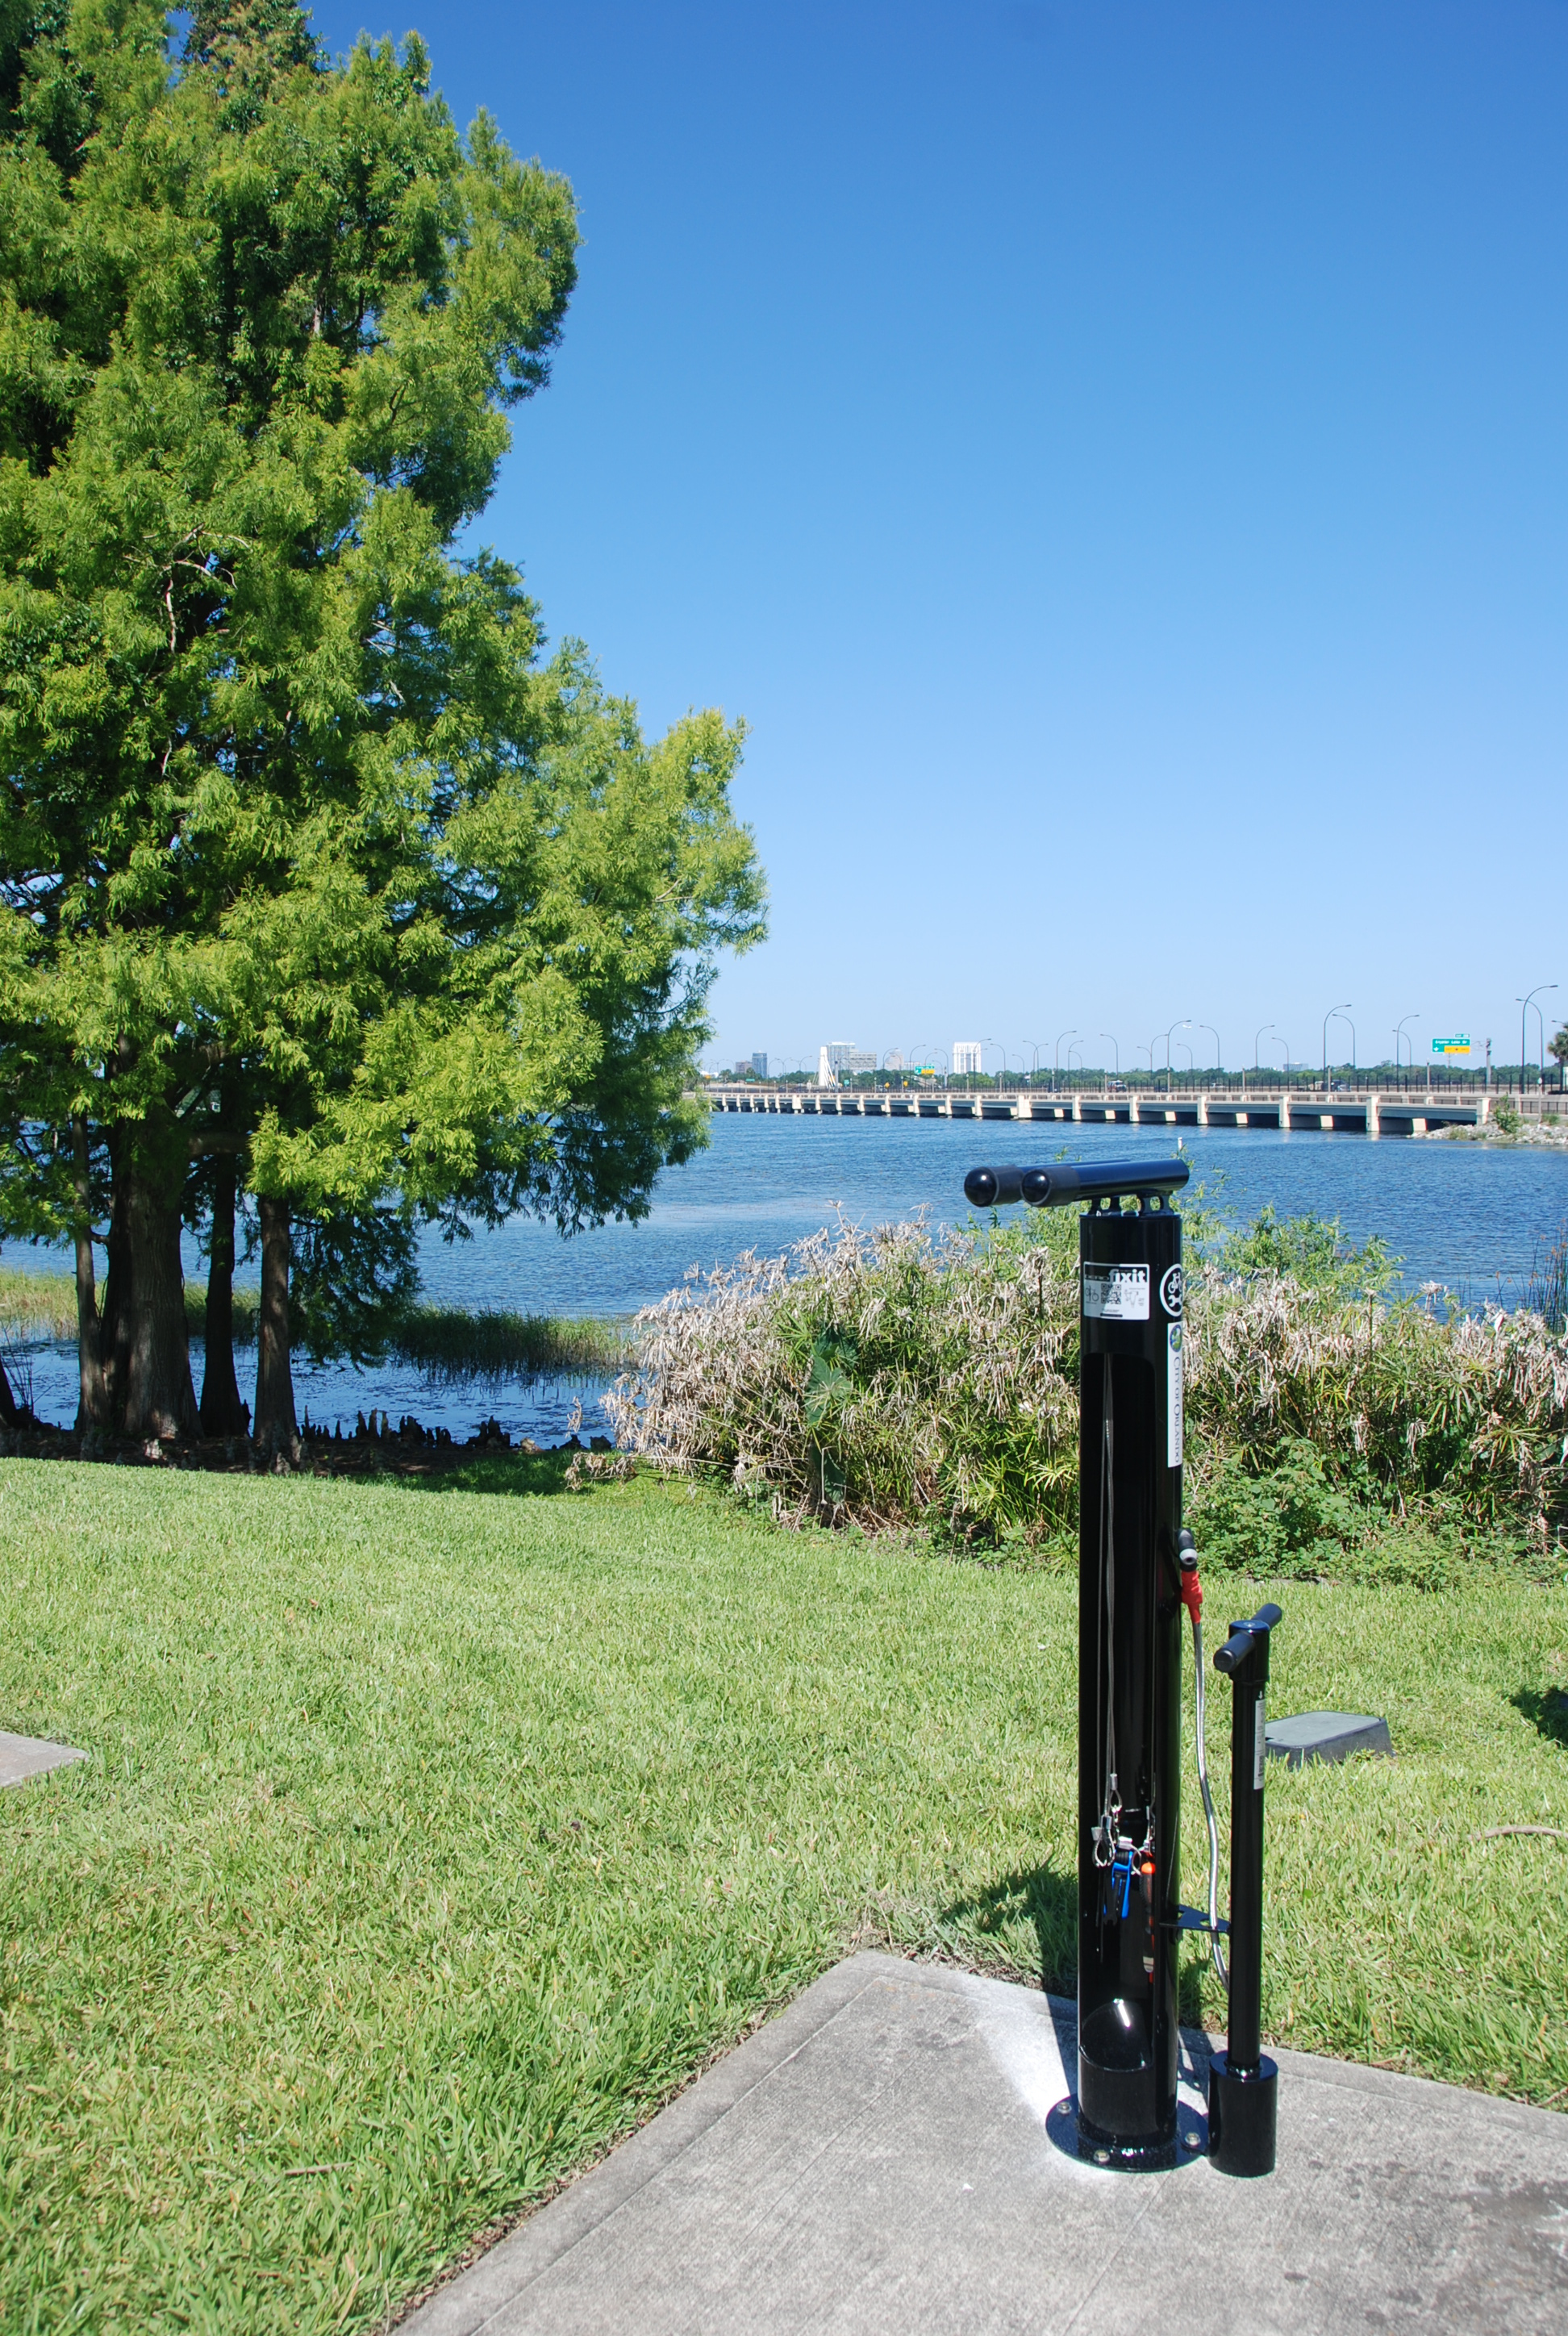 ... of Orlando Installs New Bike Repair Stations | City of Orlando News